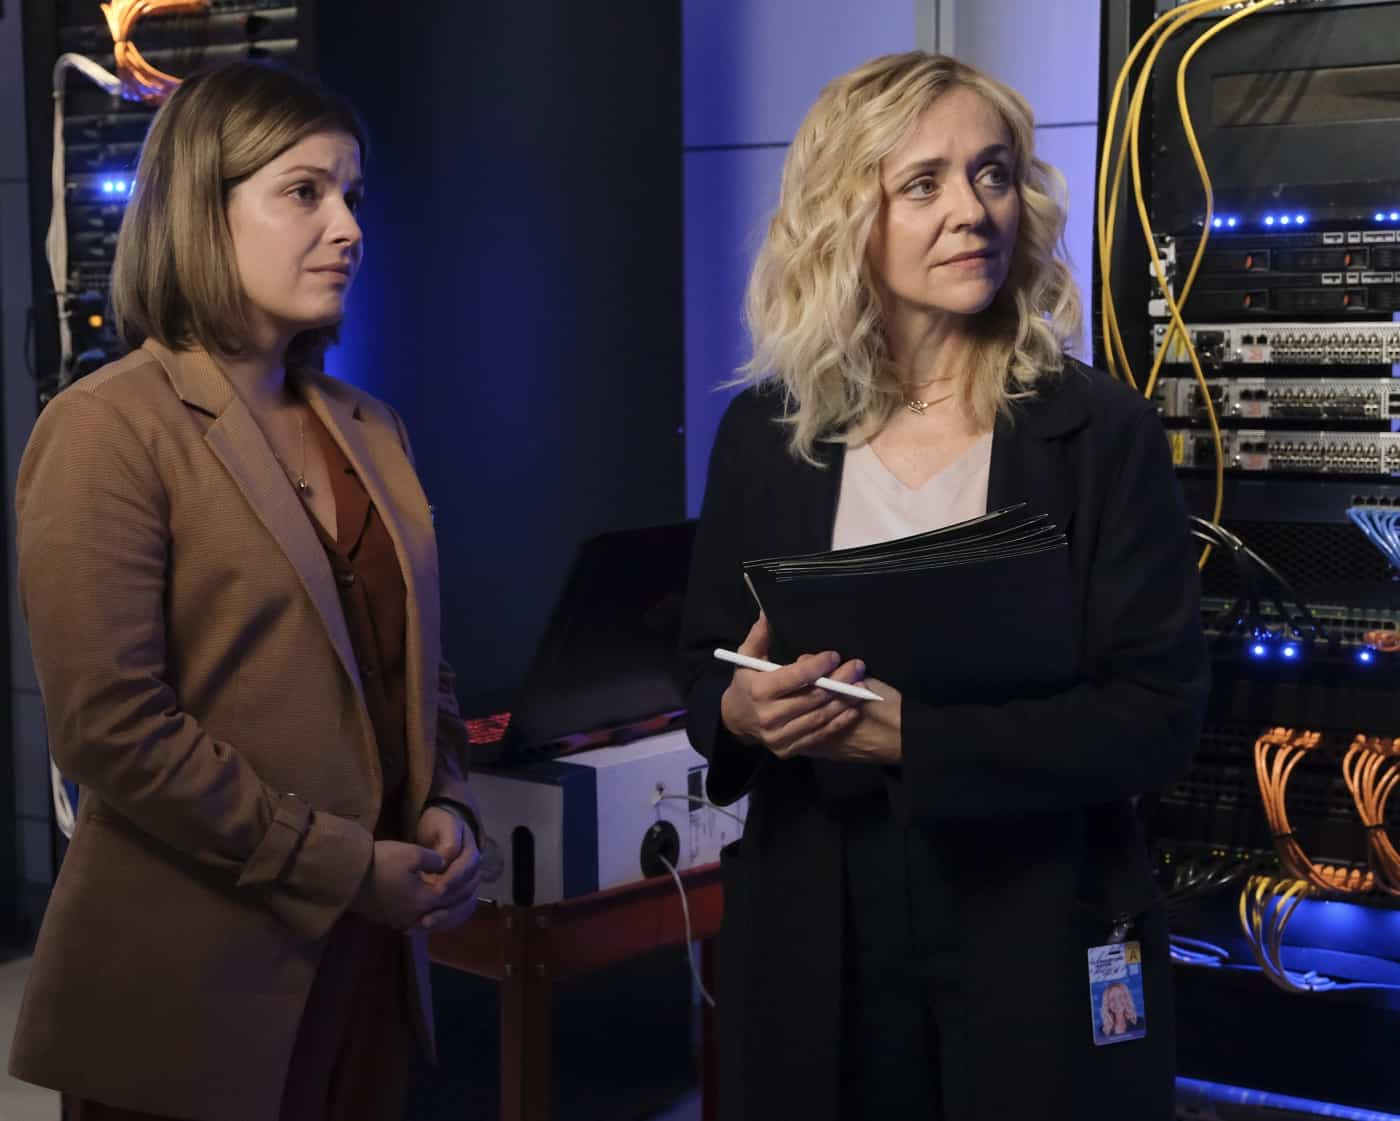 """THE GOOD DOCTOR Season 5 Episode 3 - """"Measure of Intelligence"""" – Shaun confronts Salen (Rachel Bay Jones) about the many changes she has implemented since coming on at St. Bonaventure, and Glassman is forced to accept his new role at the hospital on an all-new """"The Good Doctor,"""" MONDAY, OCT. 11 (10:00-11:00 p.m. EDT), on ABC. (ABC/Jeff Weddell) PAIGE SPARA, RACHEL BAY JONES"""